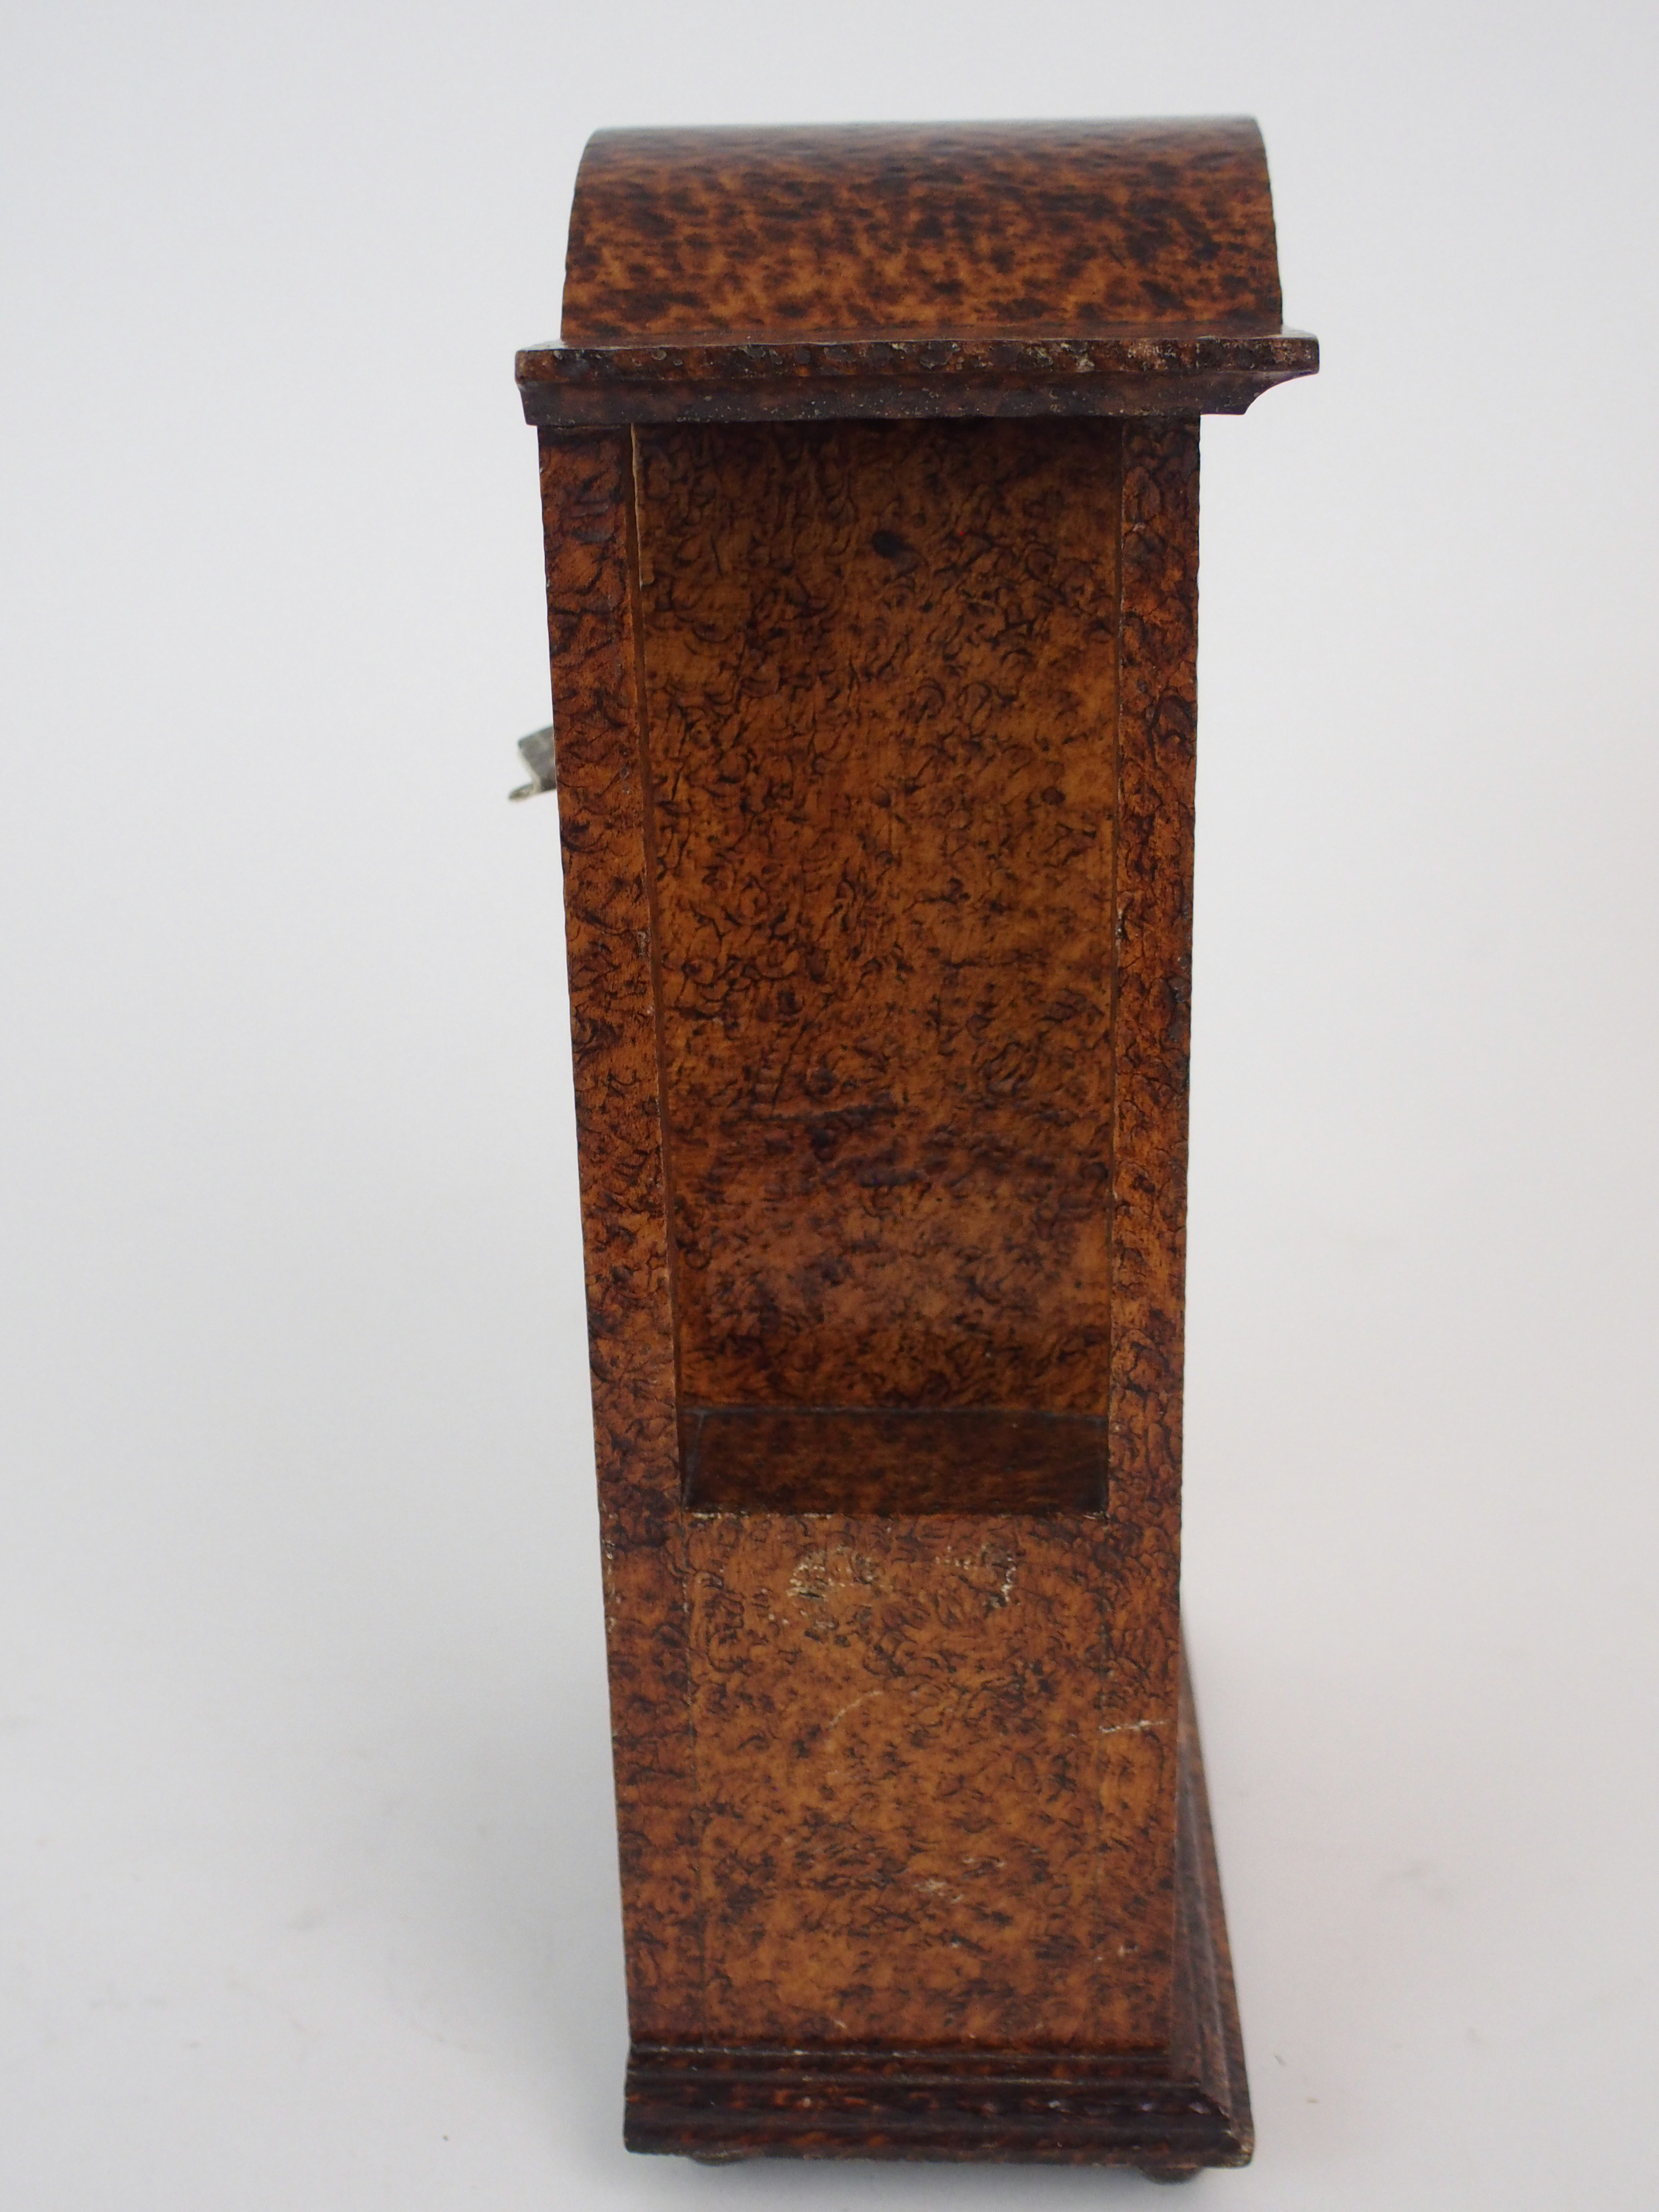 THE FOLLOWING THREE LOTS WERE DESIGNED BY BOXWORKS EMPLOYEE JOHN COOK. A MAUCHLINE WARE CLOCK CASE - Image 5 of 6